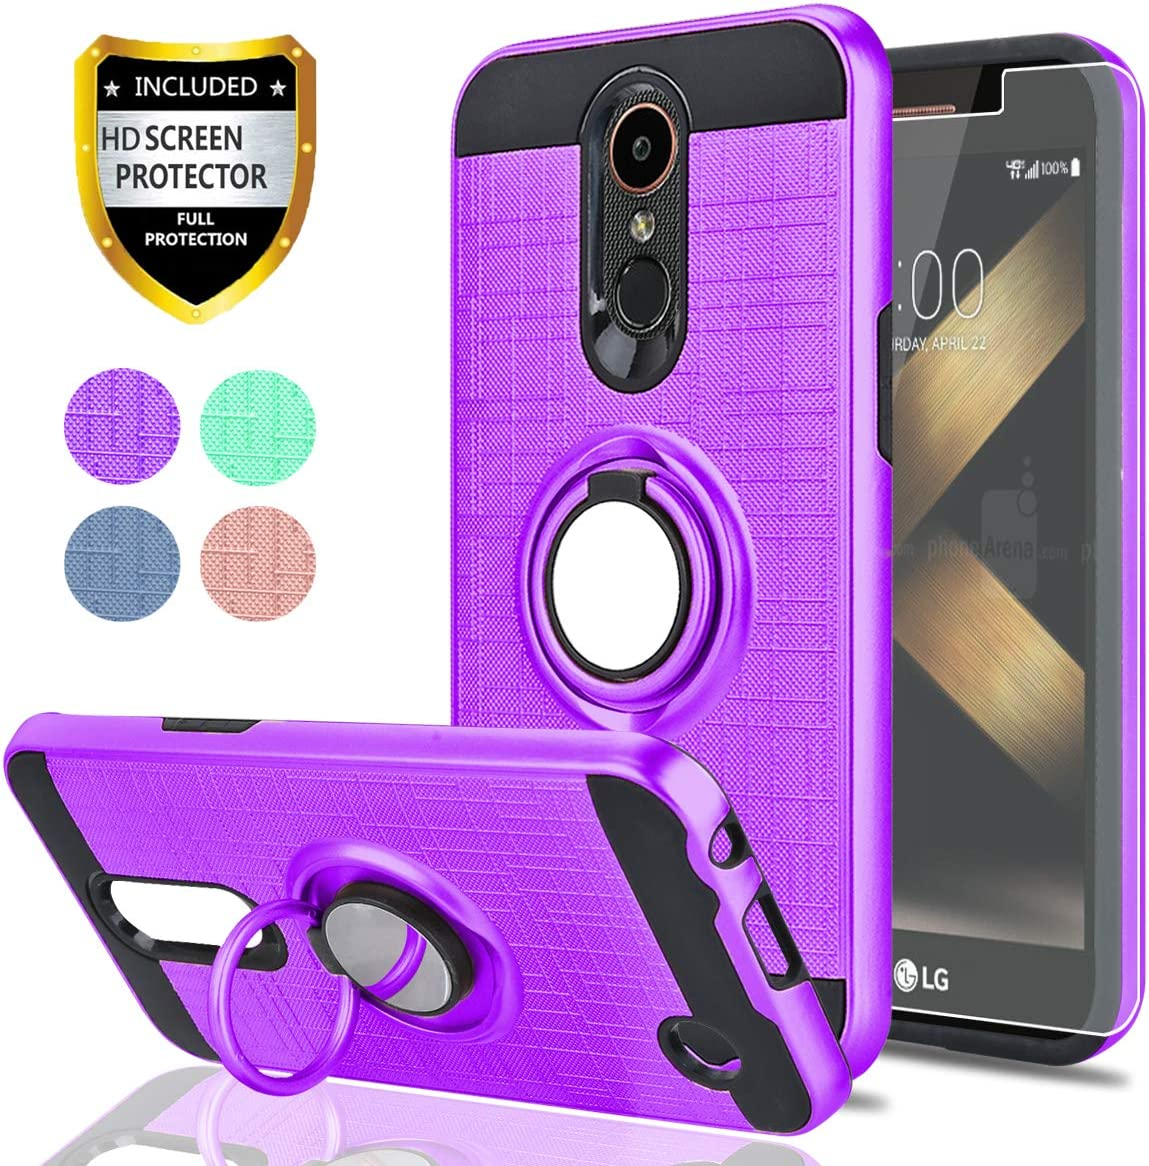 LG K20 Plus/K20 V/Harmony/Grace LTE/K10 2017 Case with HD Screen Protector,Ymhxcy 360 Degree Rotating Ring & Bracket Rubber Dual Layer Shock Bumper Resistant Back Cover for LG LV5-ZH Purple